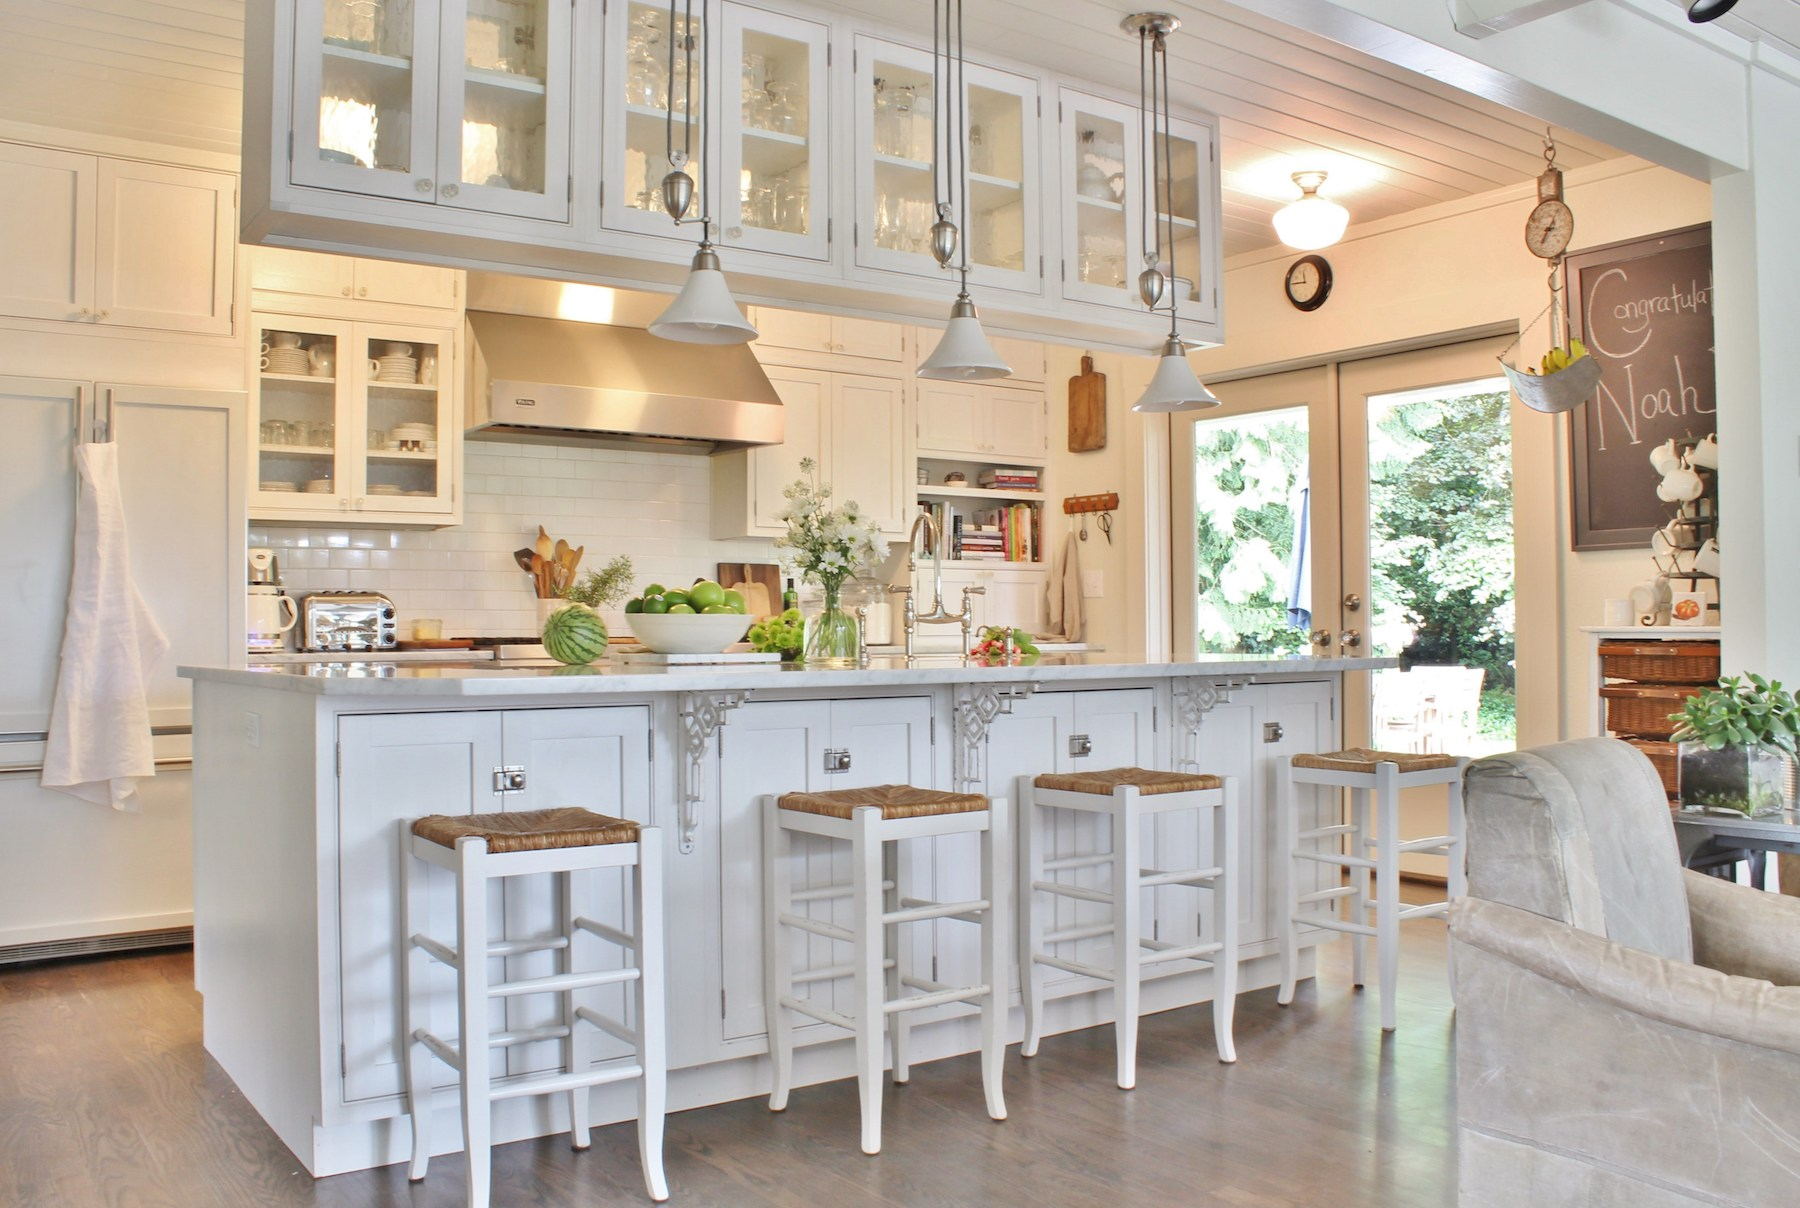 hardwood flooring is no longer the top choice for kitchens real simple rh realsimple com kitchens 2019 trends kitchens 2019 uk